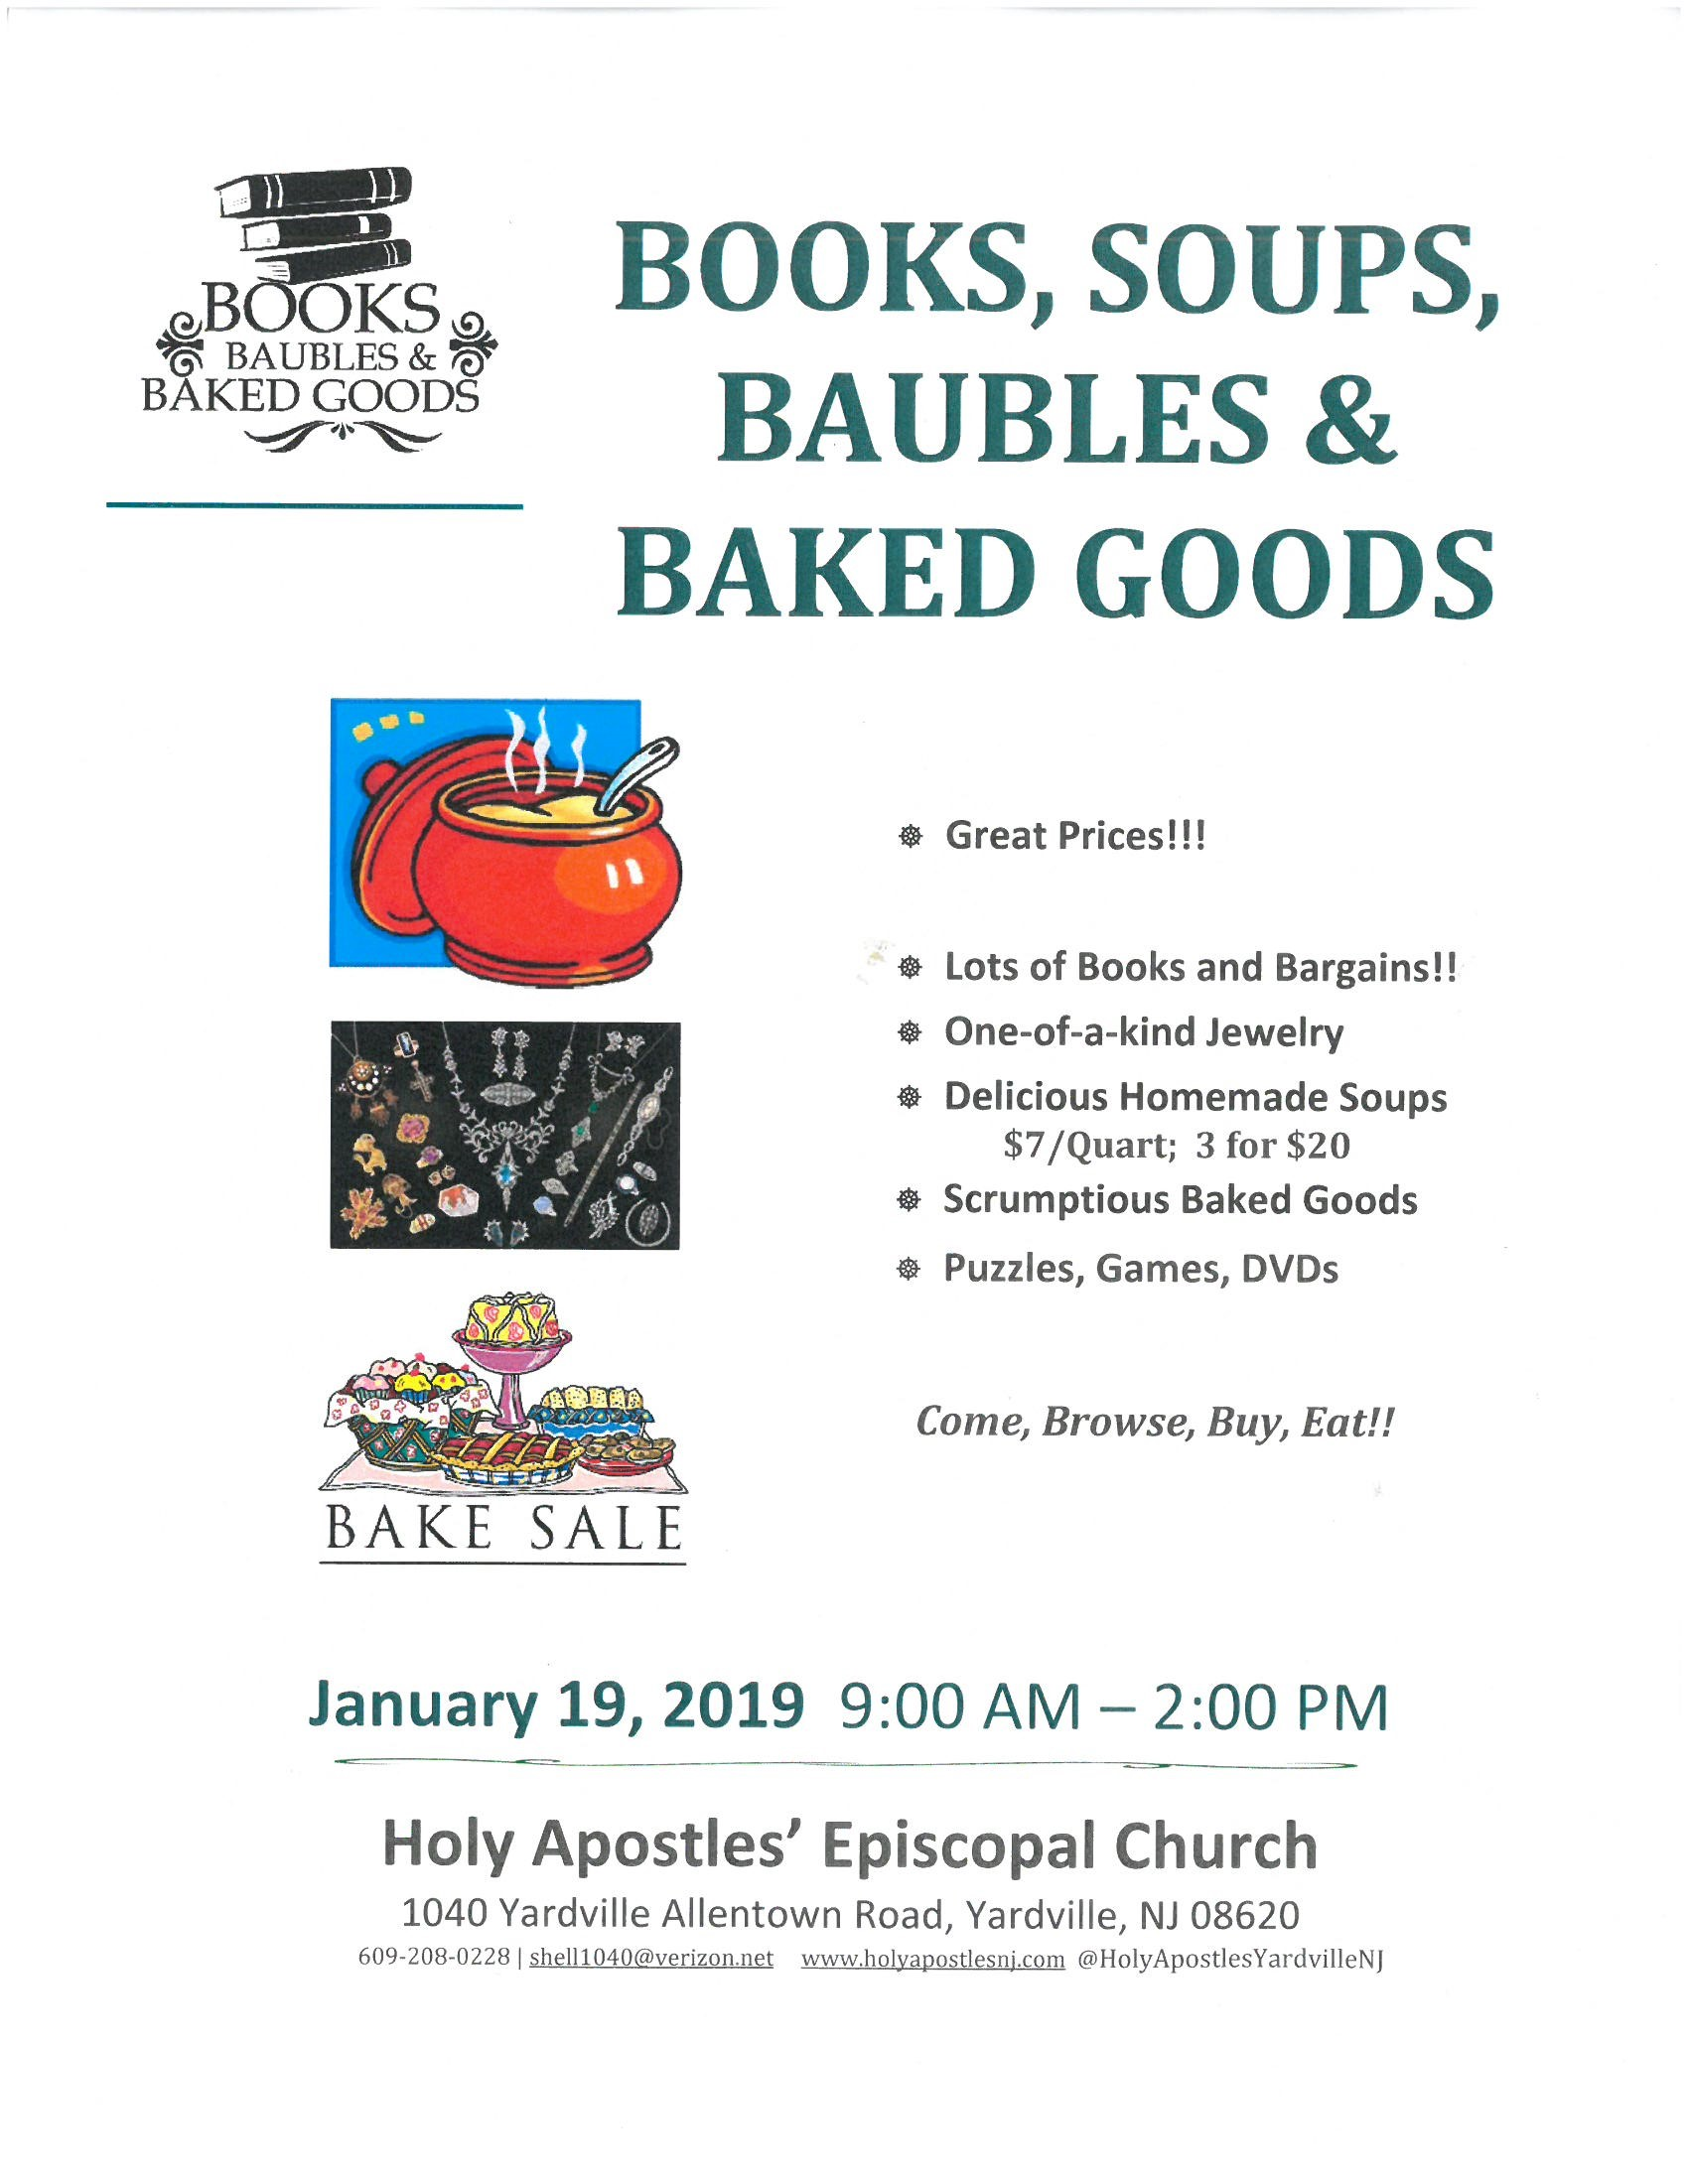 Books, Soups, Baubles & Baked Goods 9AM